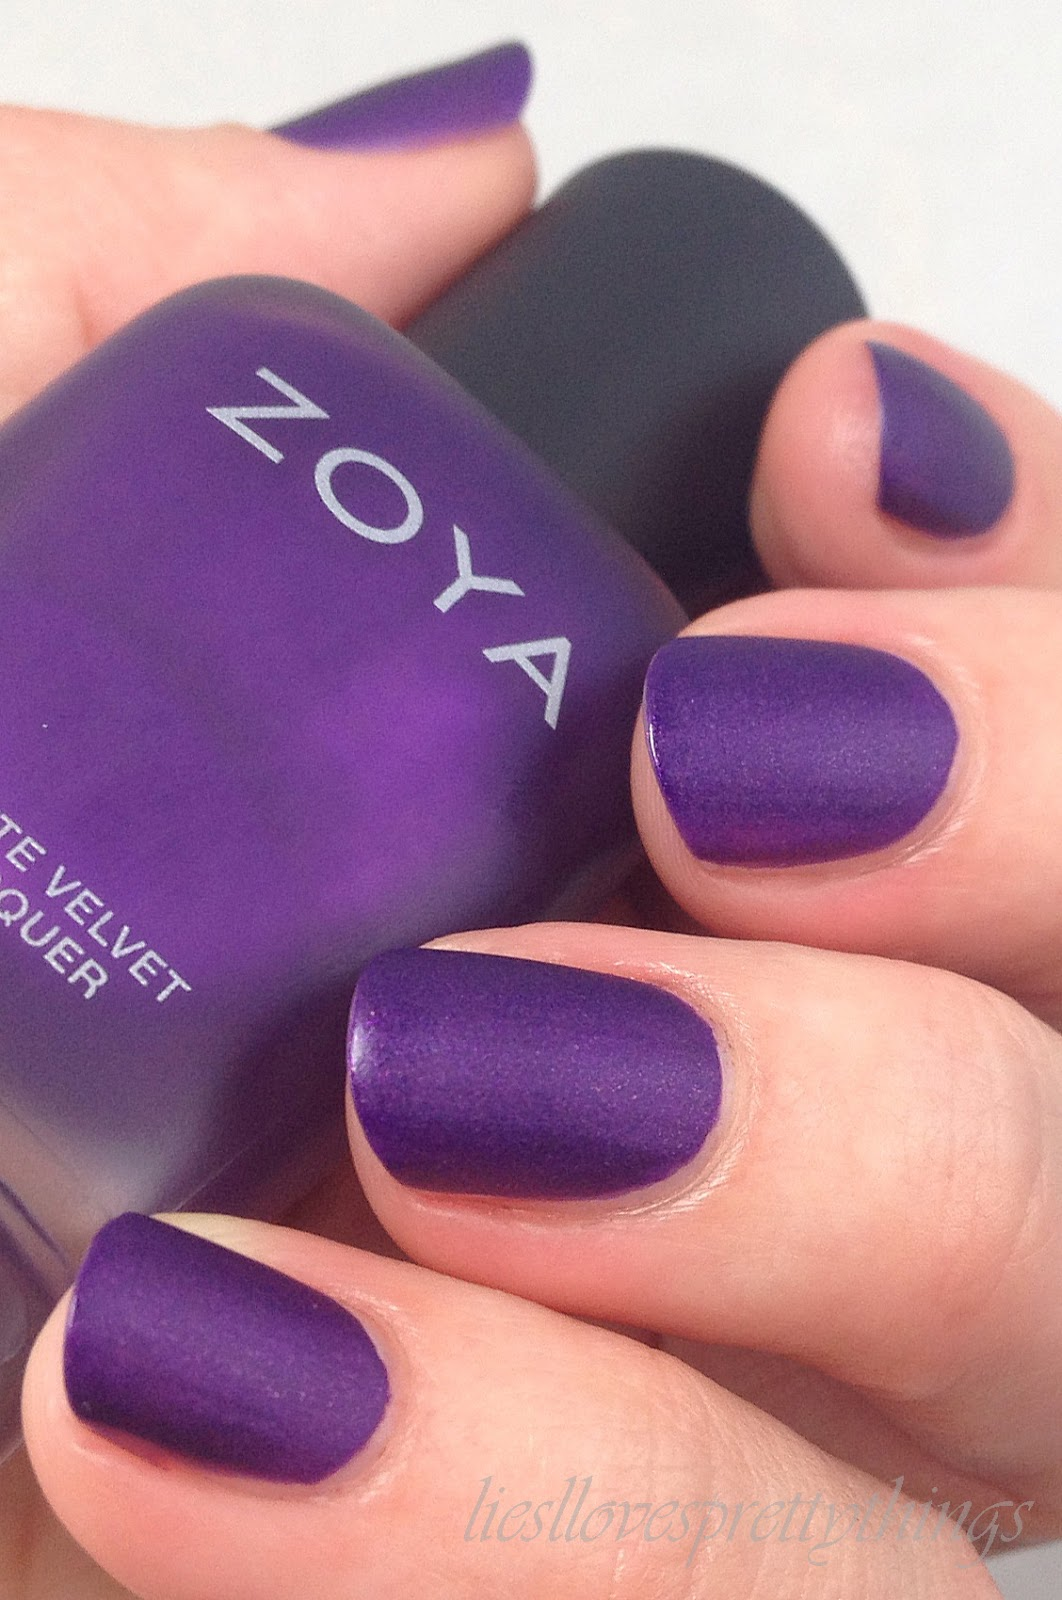 Zoya Matte Velvets swatch and review